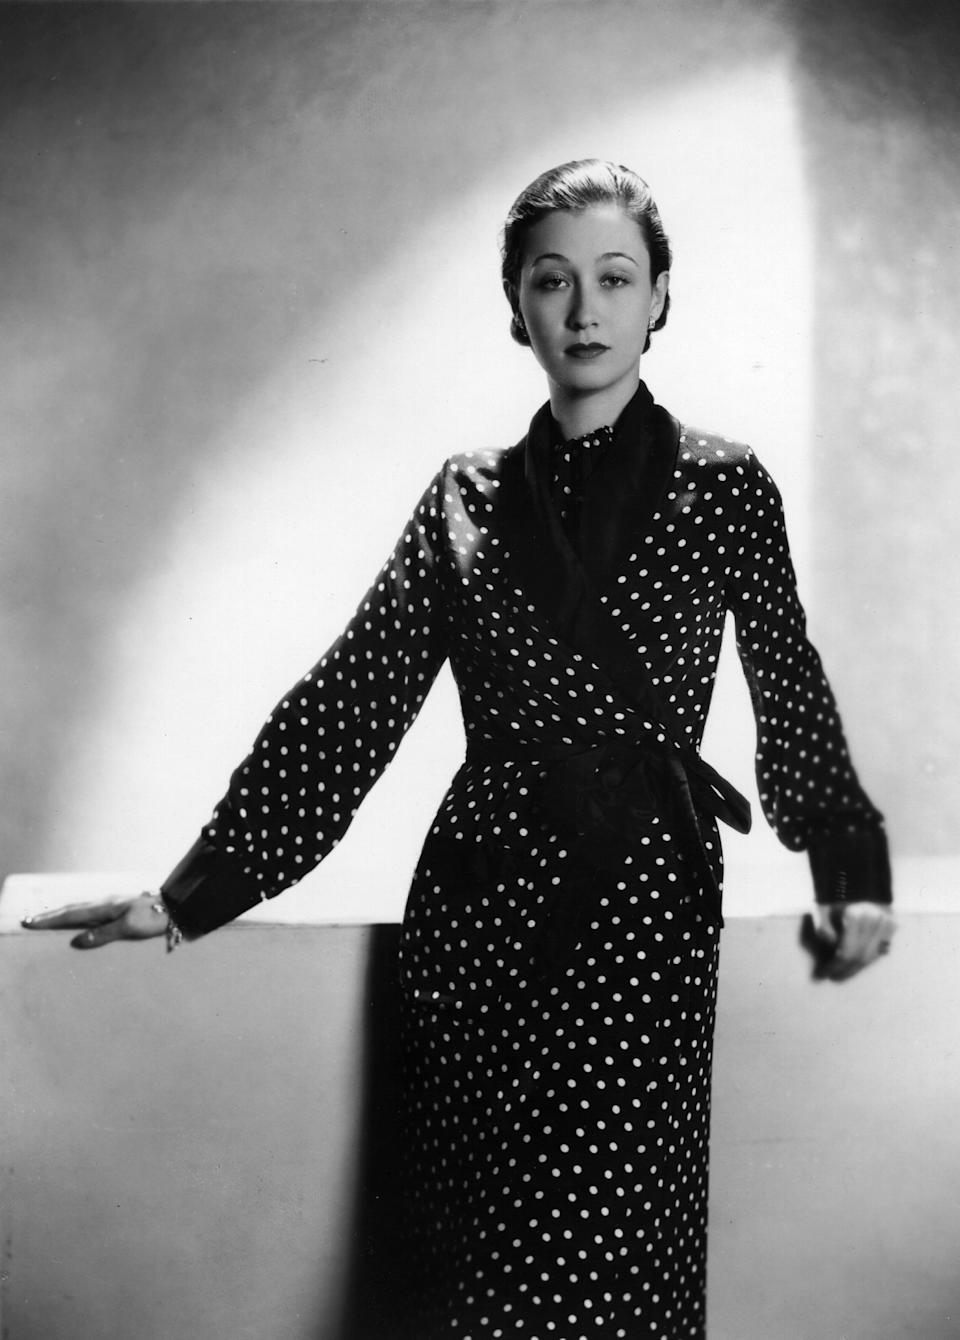 Koopman wears a dotted robe in this 1934 photo.